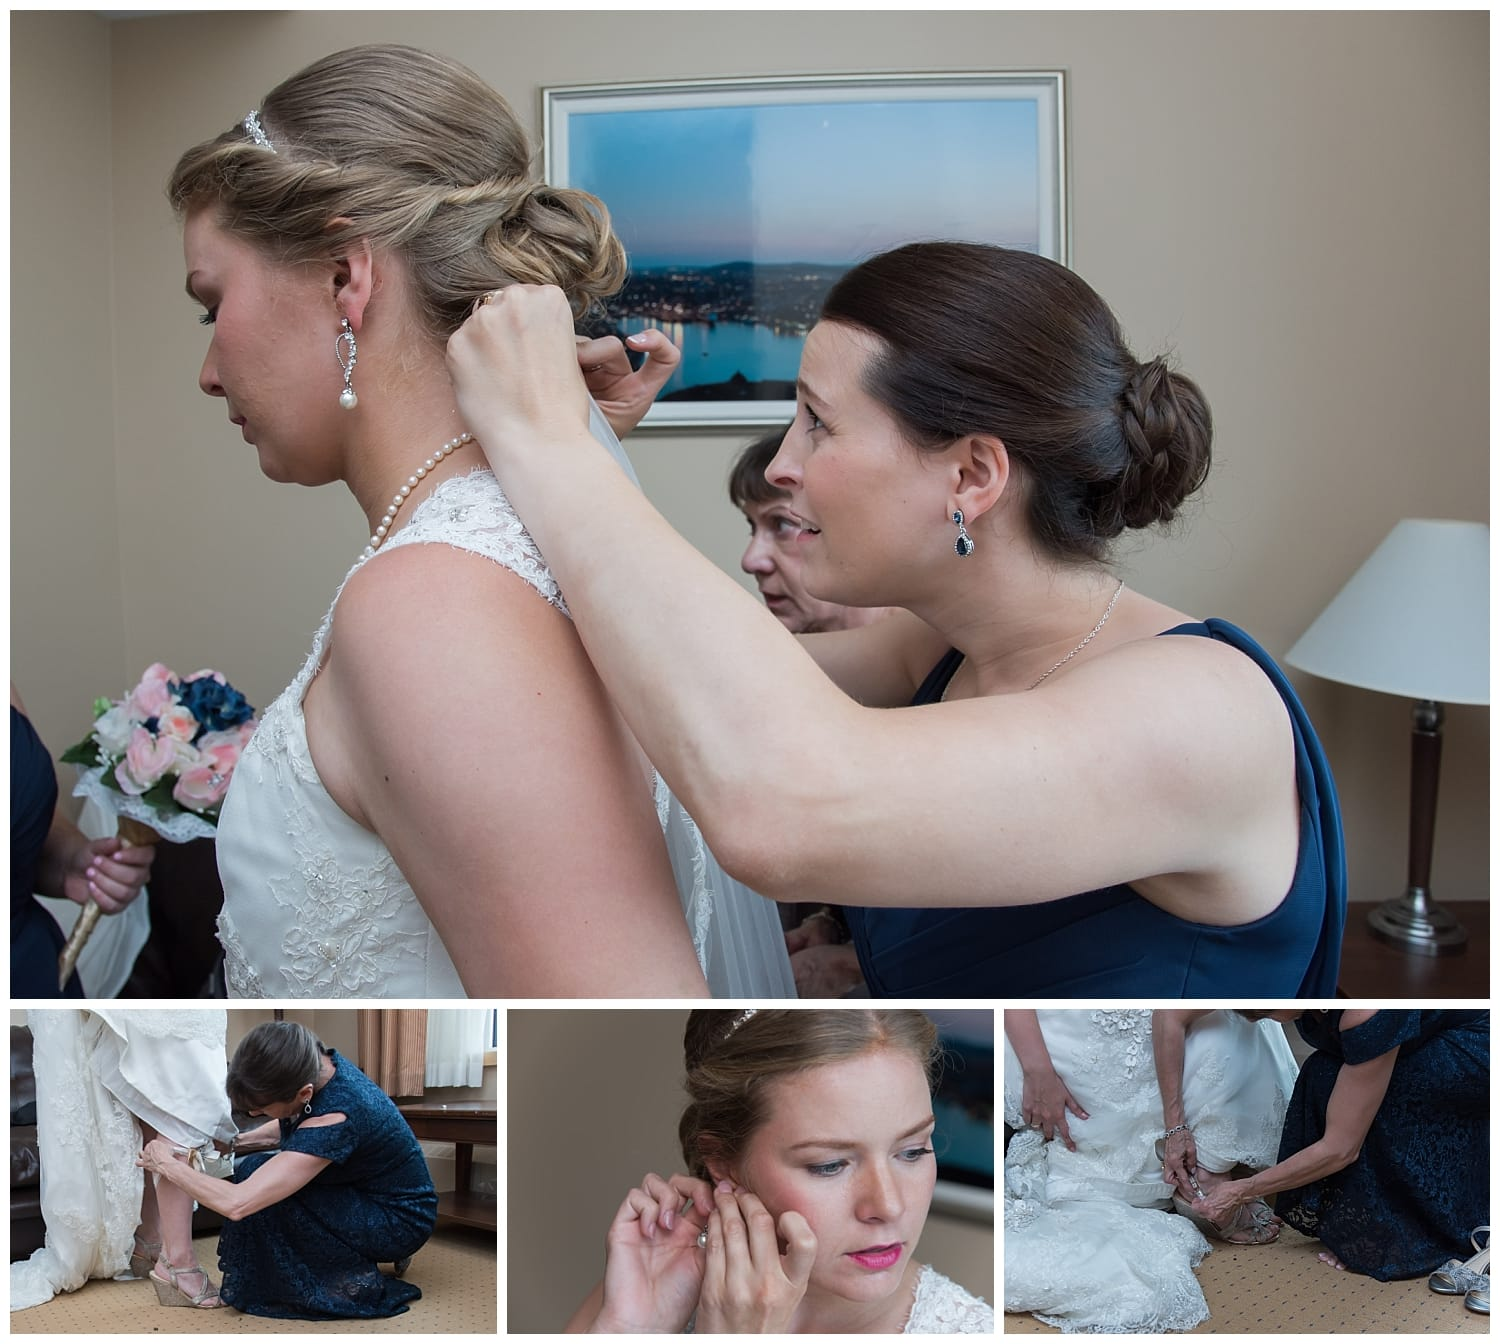 The bride getting ready for her wedding at Juno Tower in Halifax.